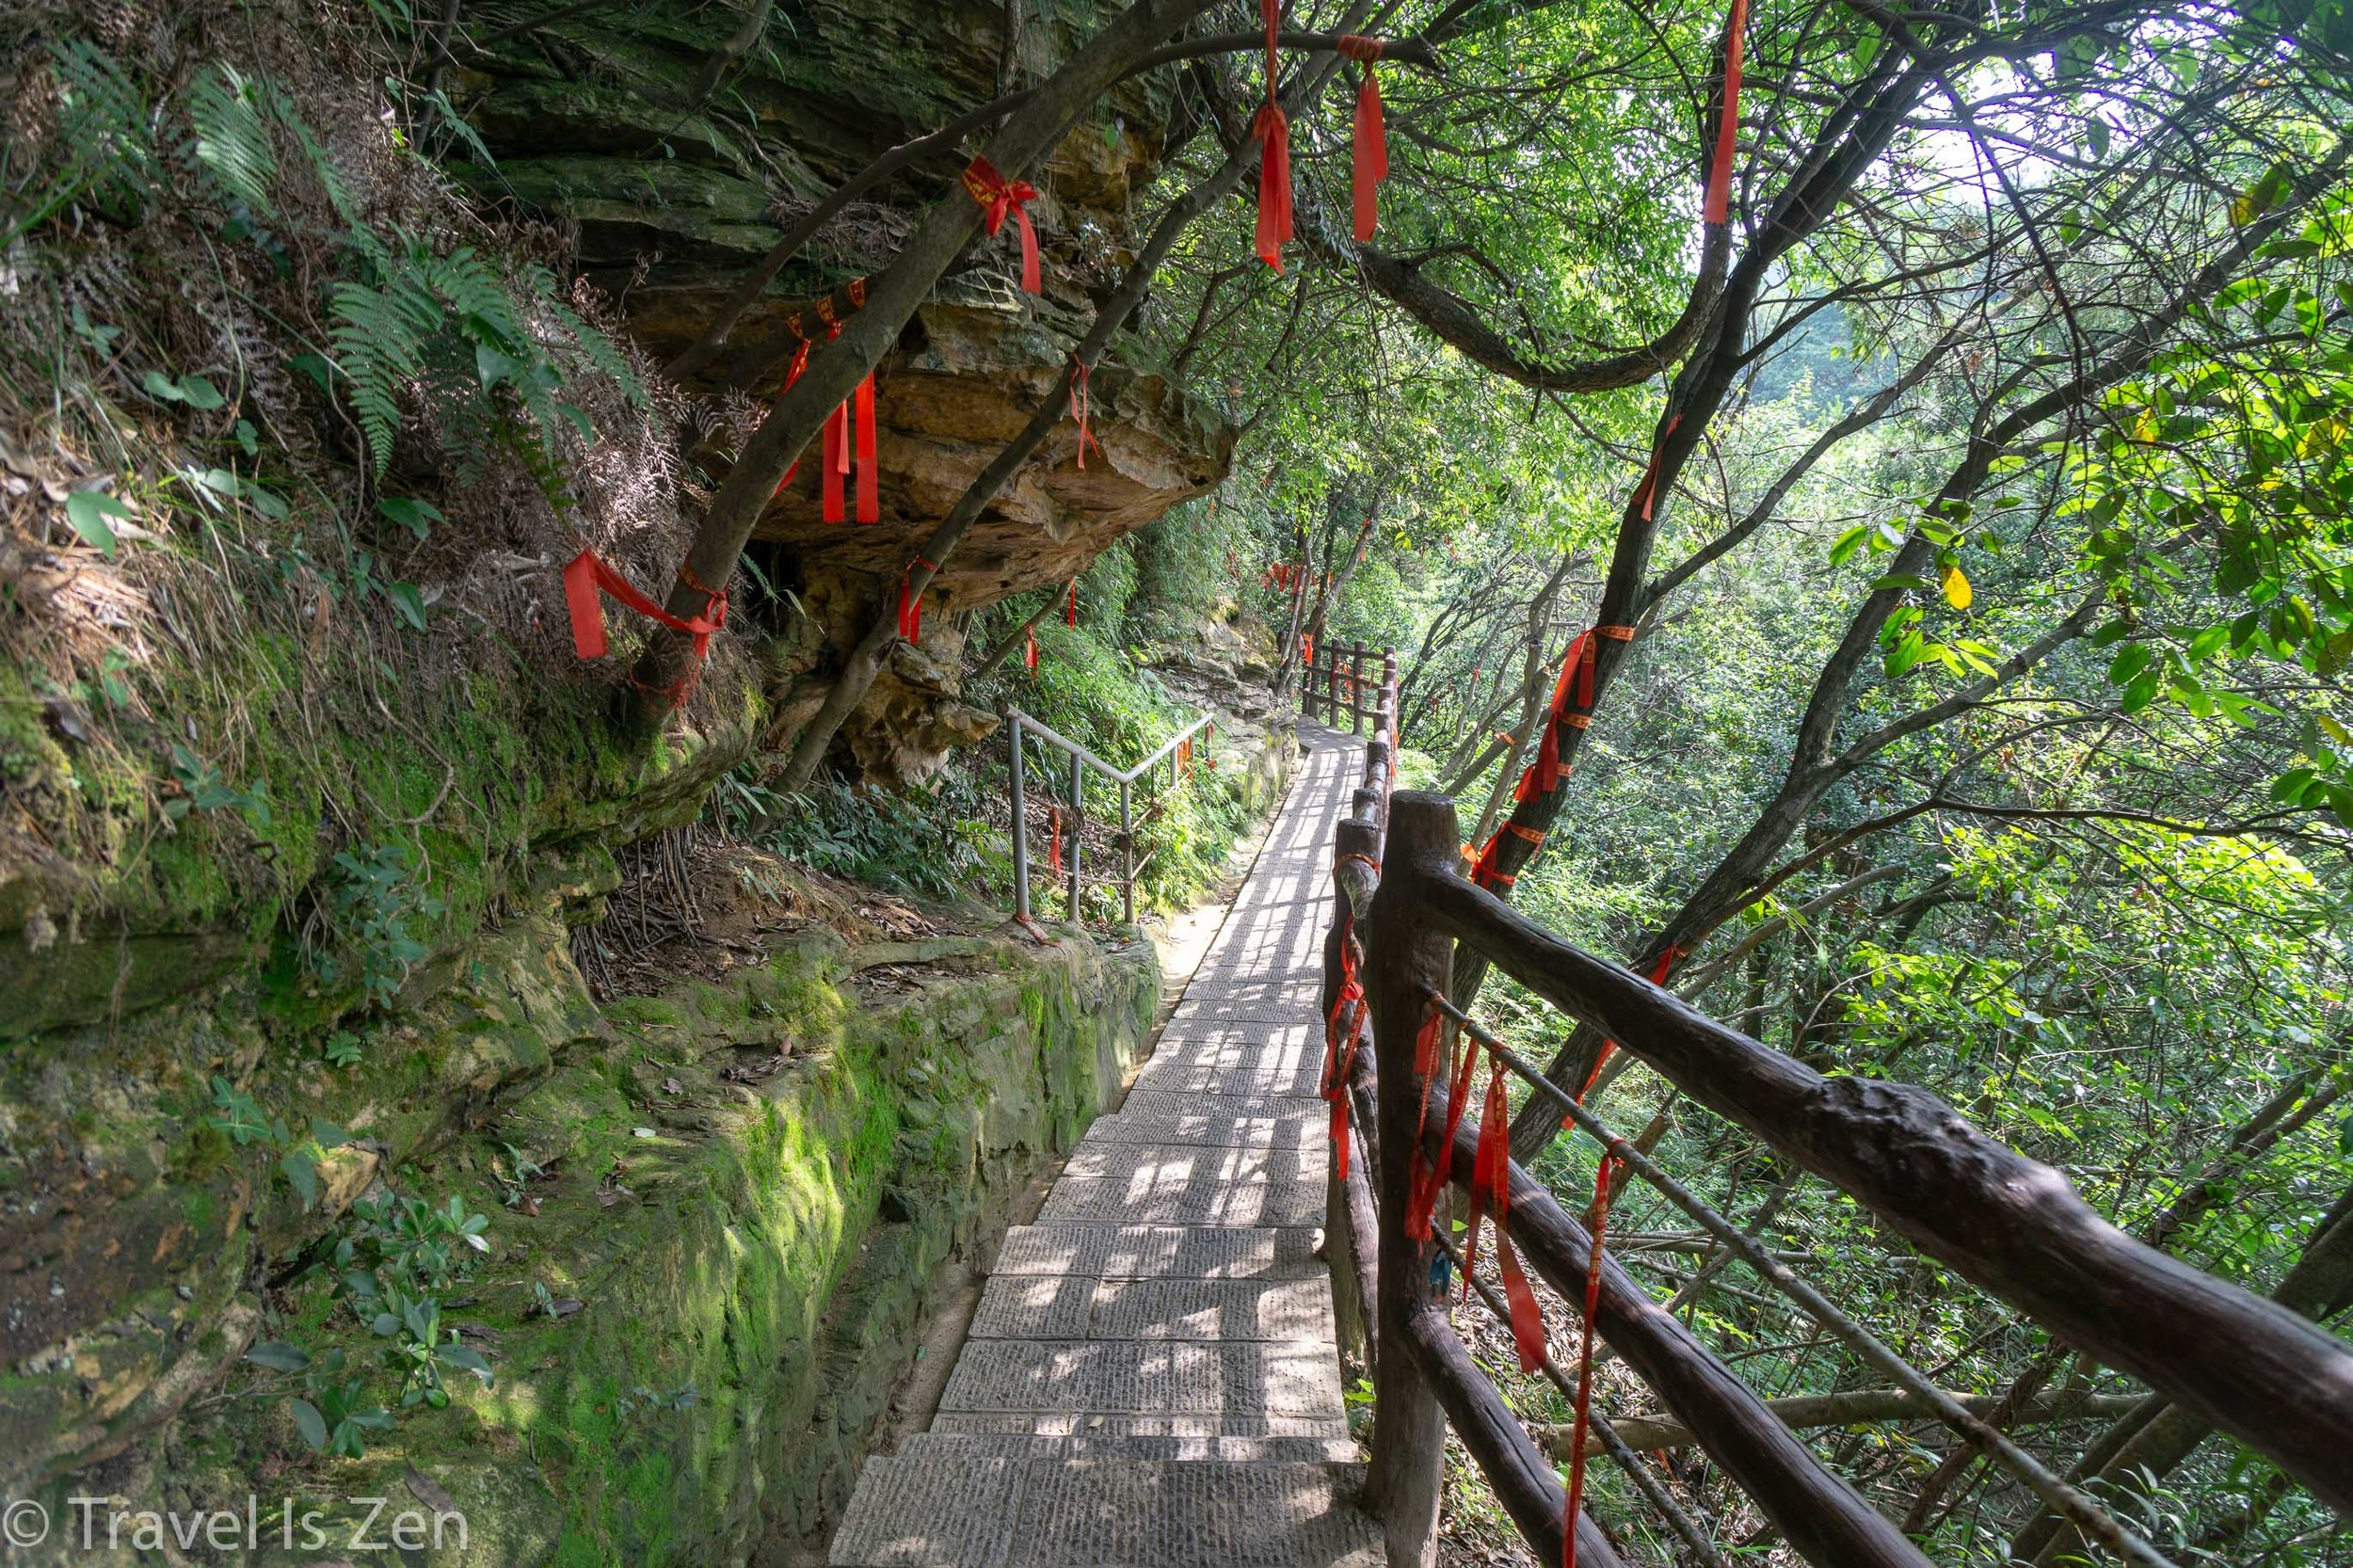 Three day hiking guide to Zhangjiajie - Tips to avoid the crowds and get the best photos